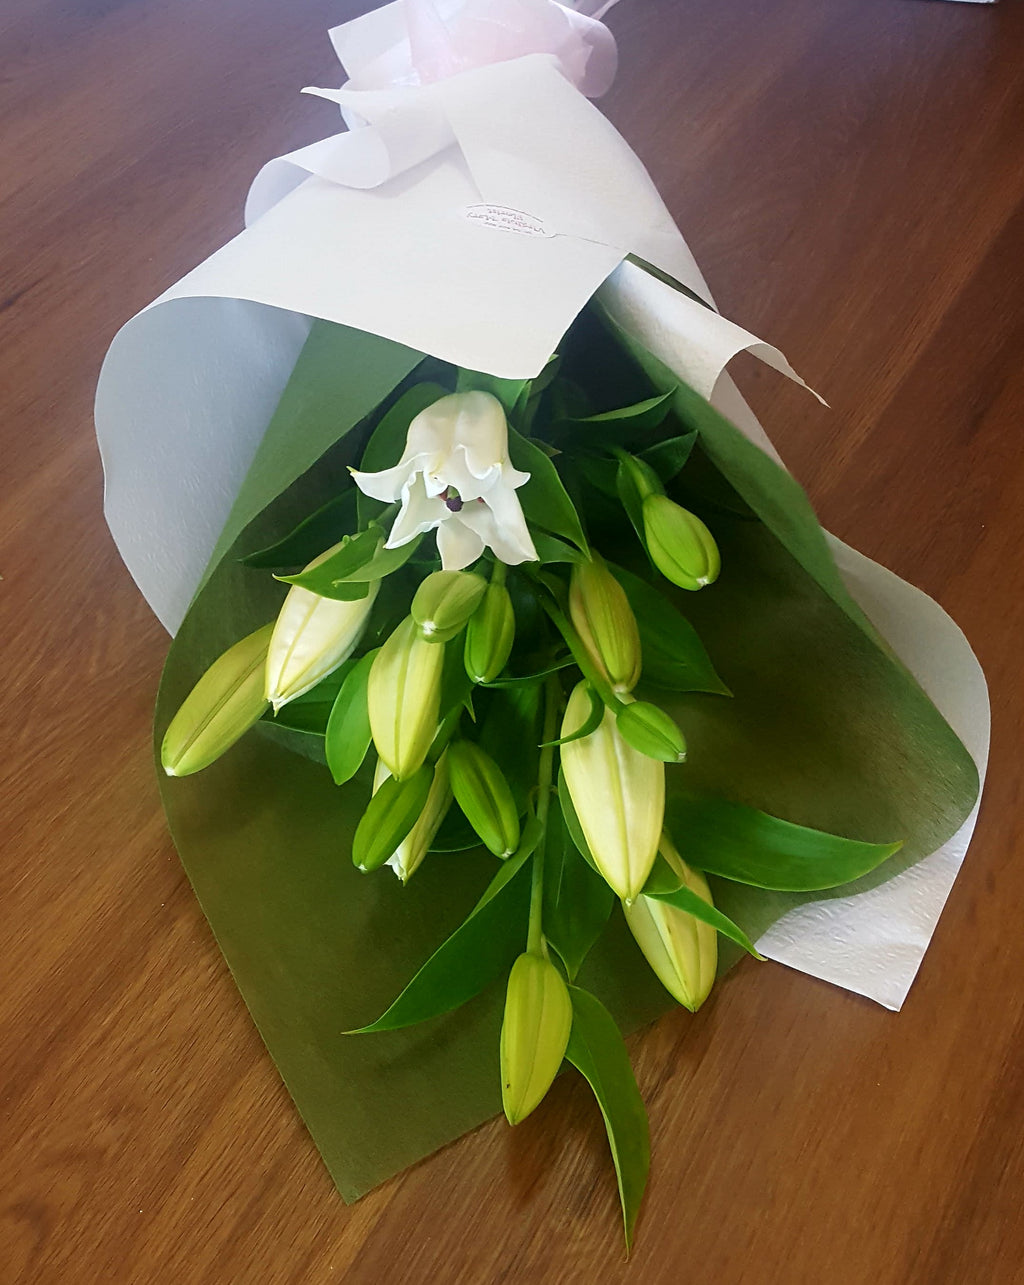 oriental lilies have a beautiful perfume,they come in white & various shades of pink.Lilies are gift wrapped ready for delivery.